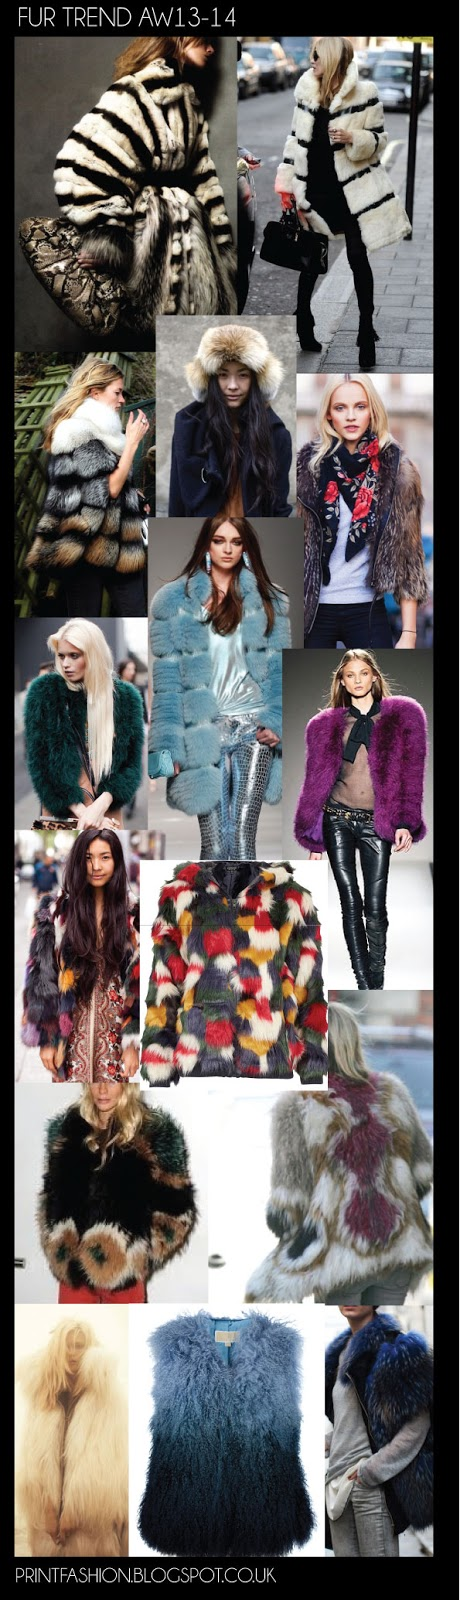 fur trend aw13